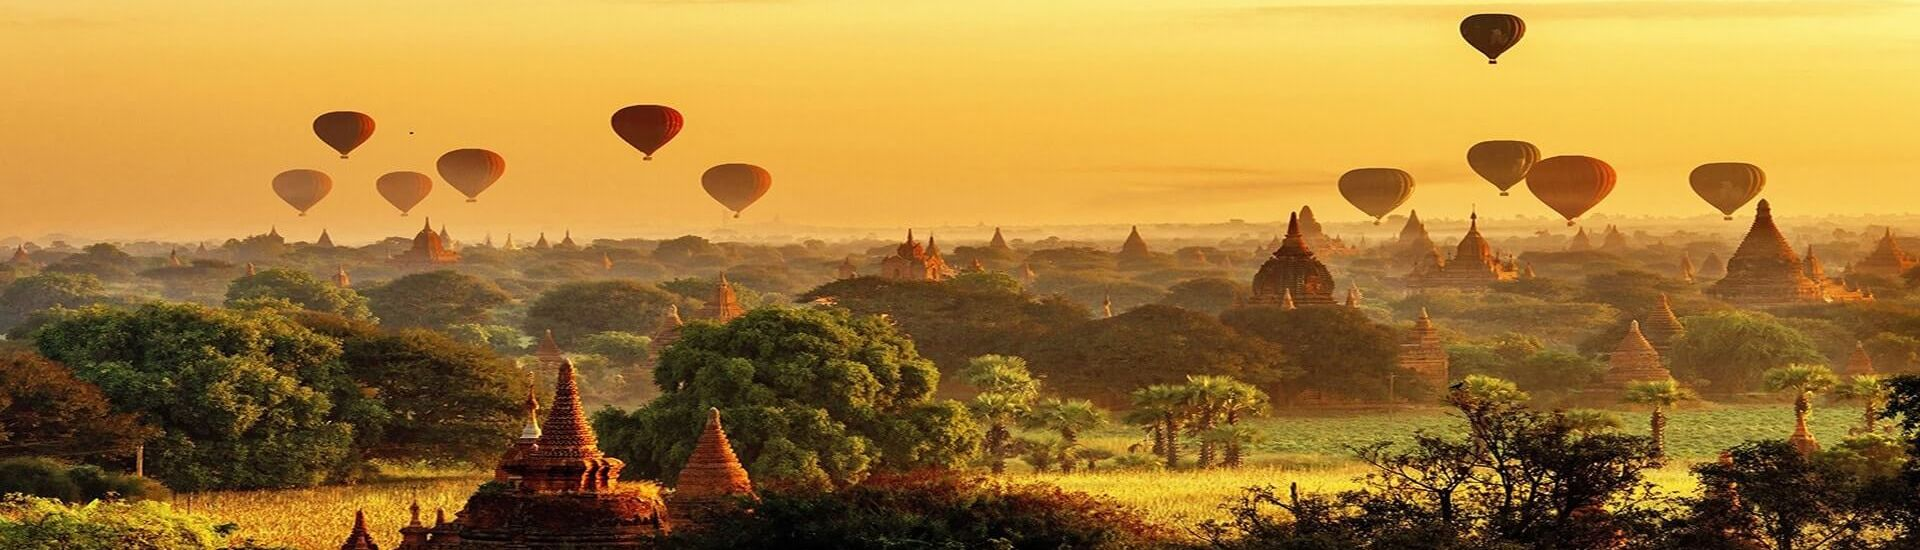 Bagan-myanmar-tour